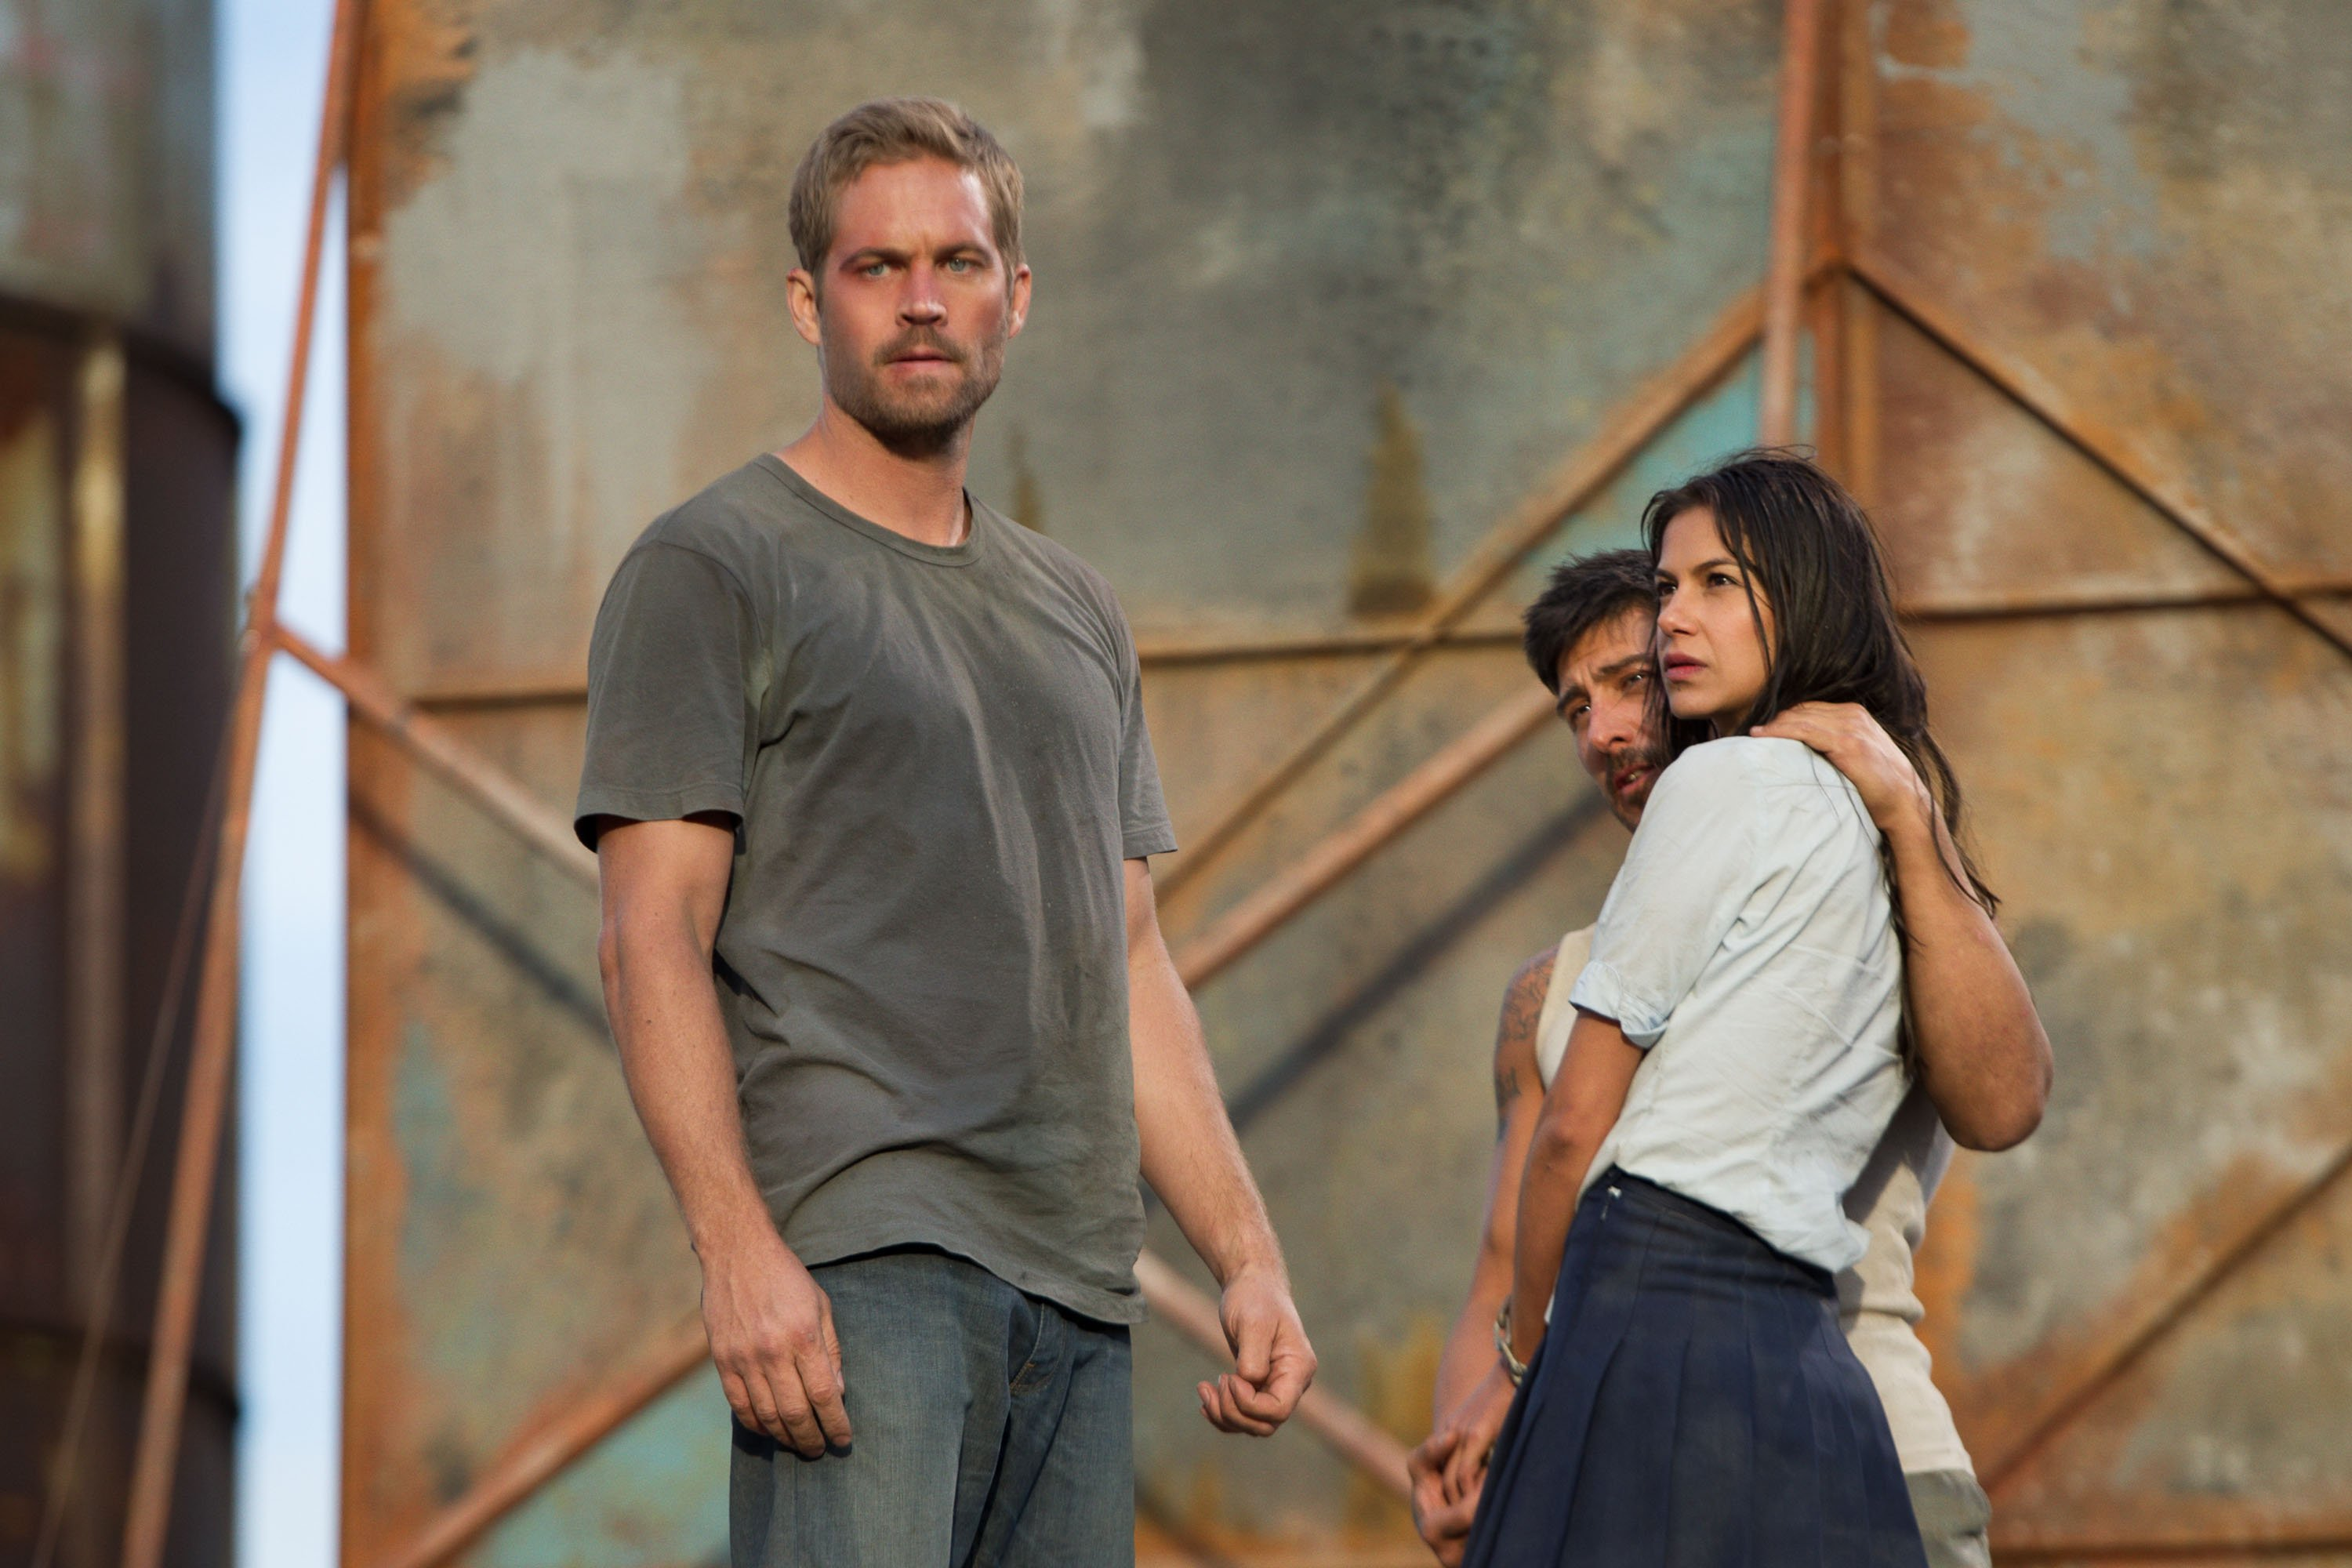 Photo du film Brick Mansions réalisé par Camille Delamarre en 2014 avec Paul Walker